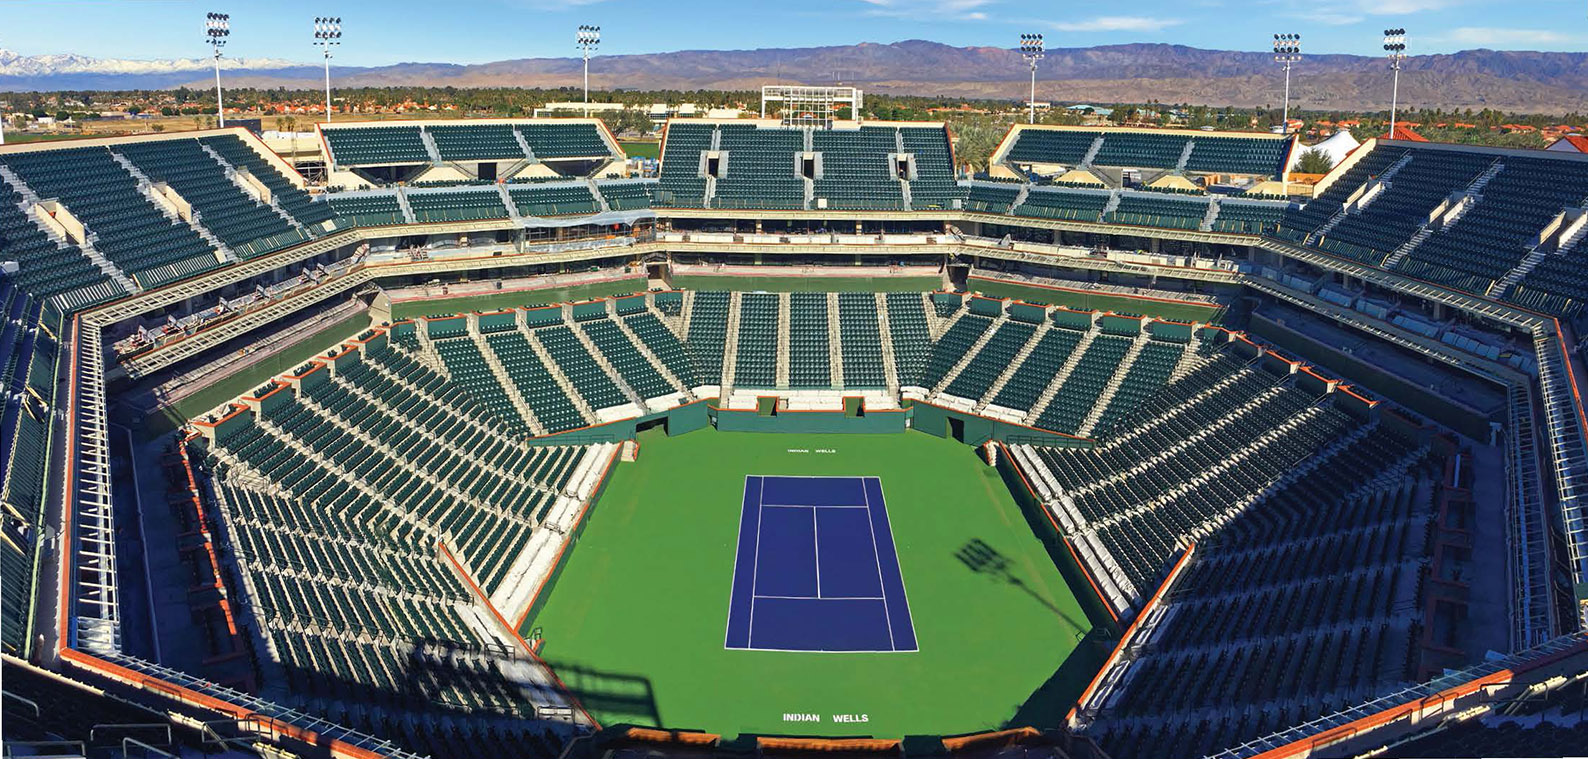 Indian Wells Stadium One